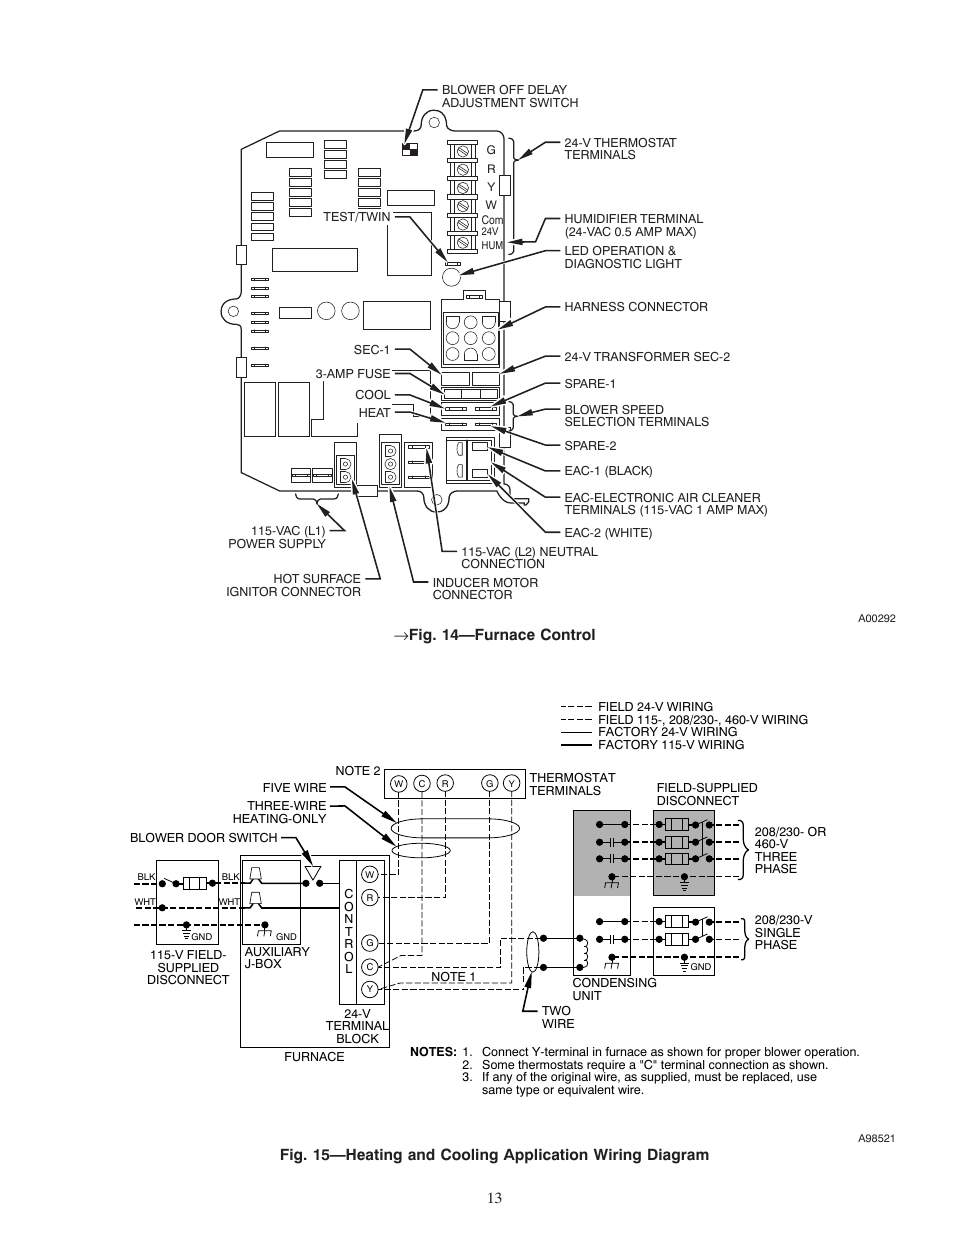 medium resolution of 14 furnace control carrier weathermaker 8000 58zav user manual page 13 24